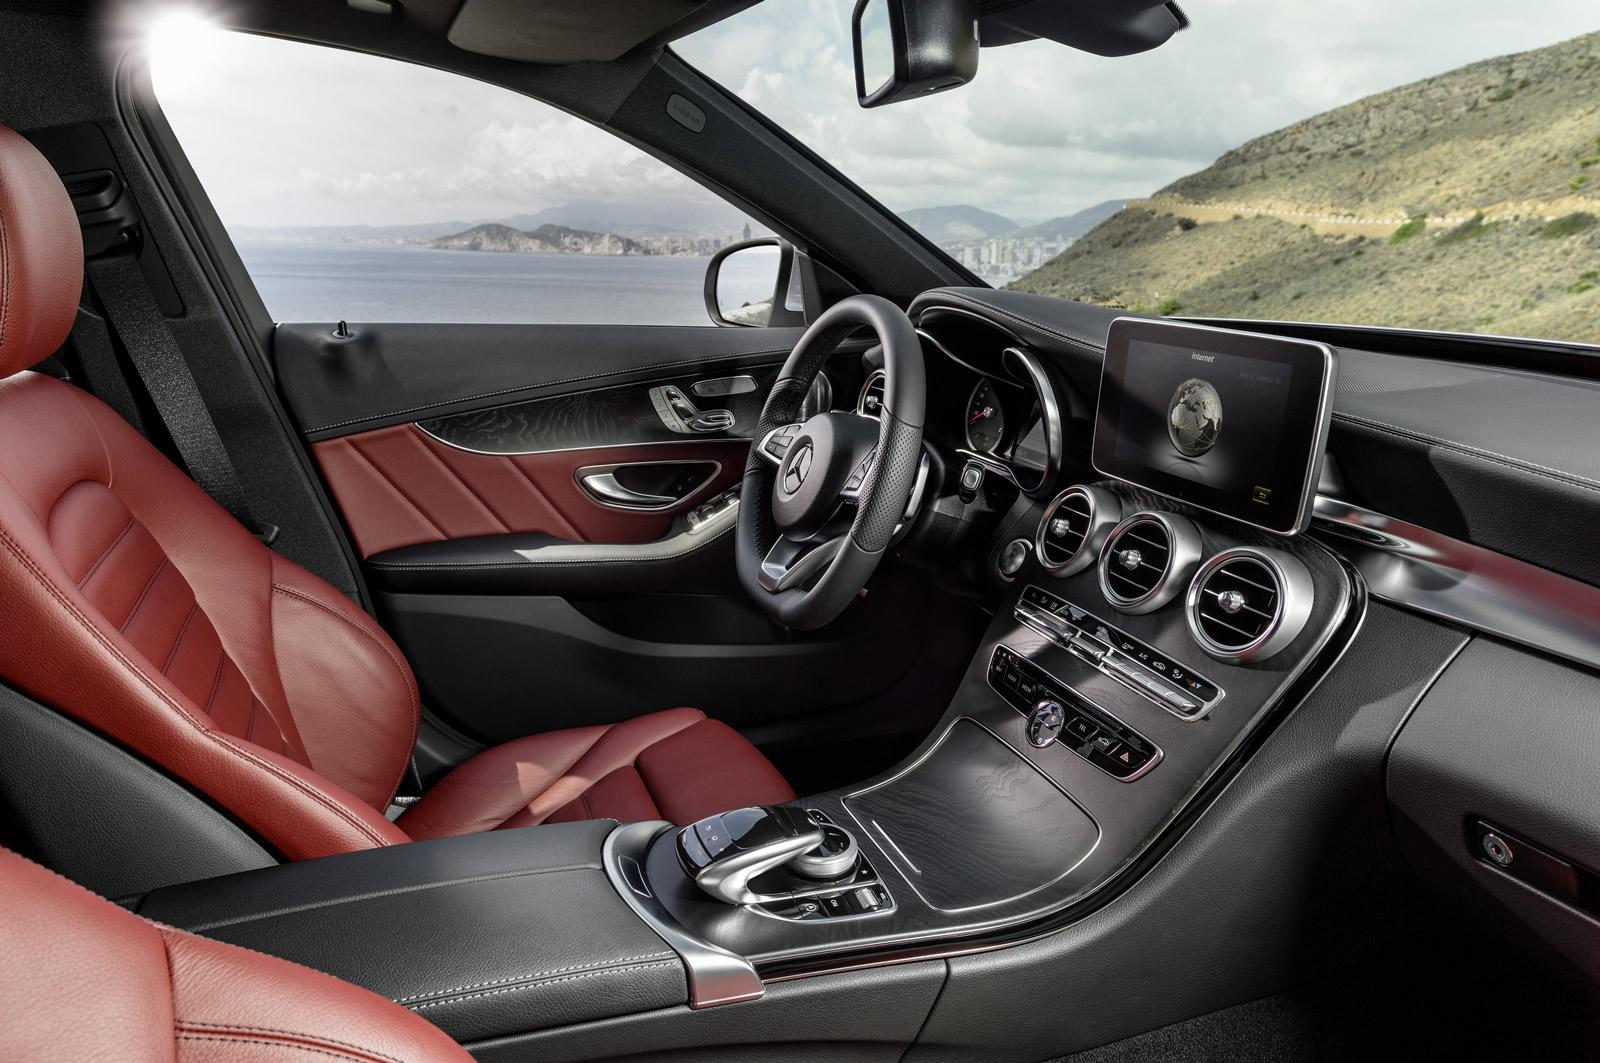 Mercedes Cars News 2014 C Class Officially Revealed